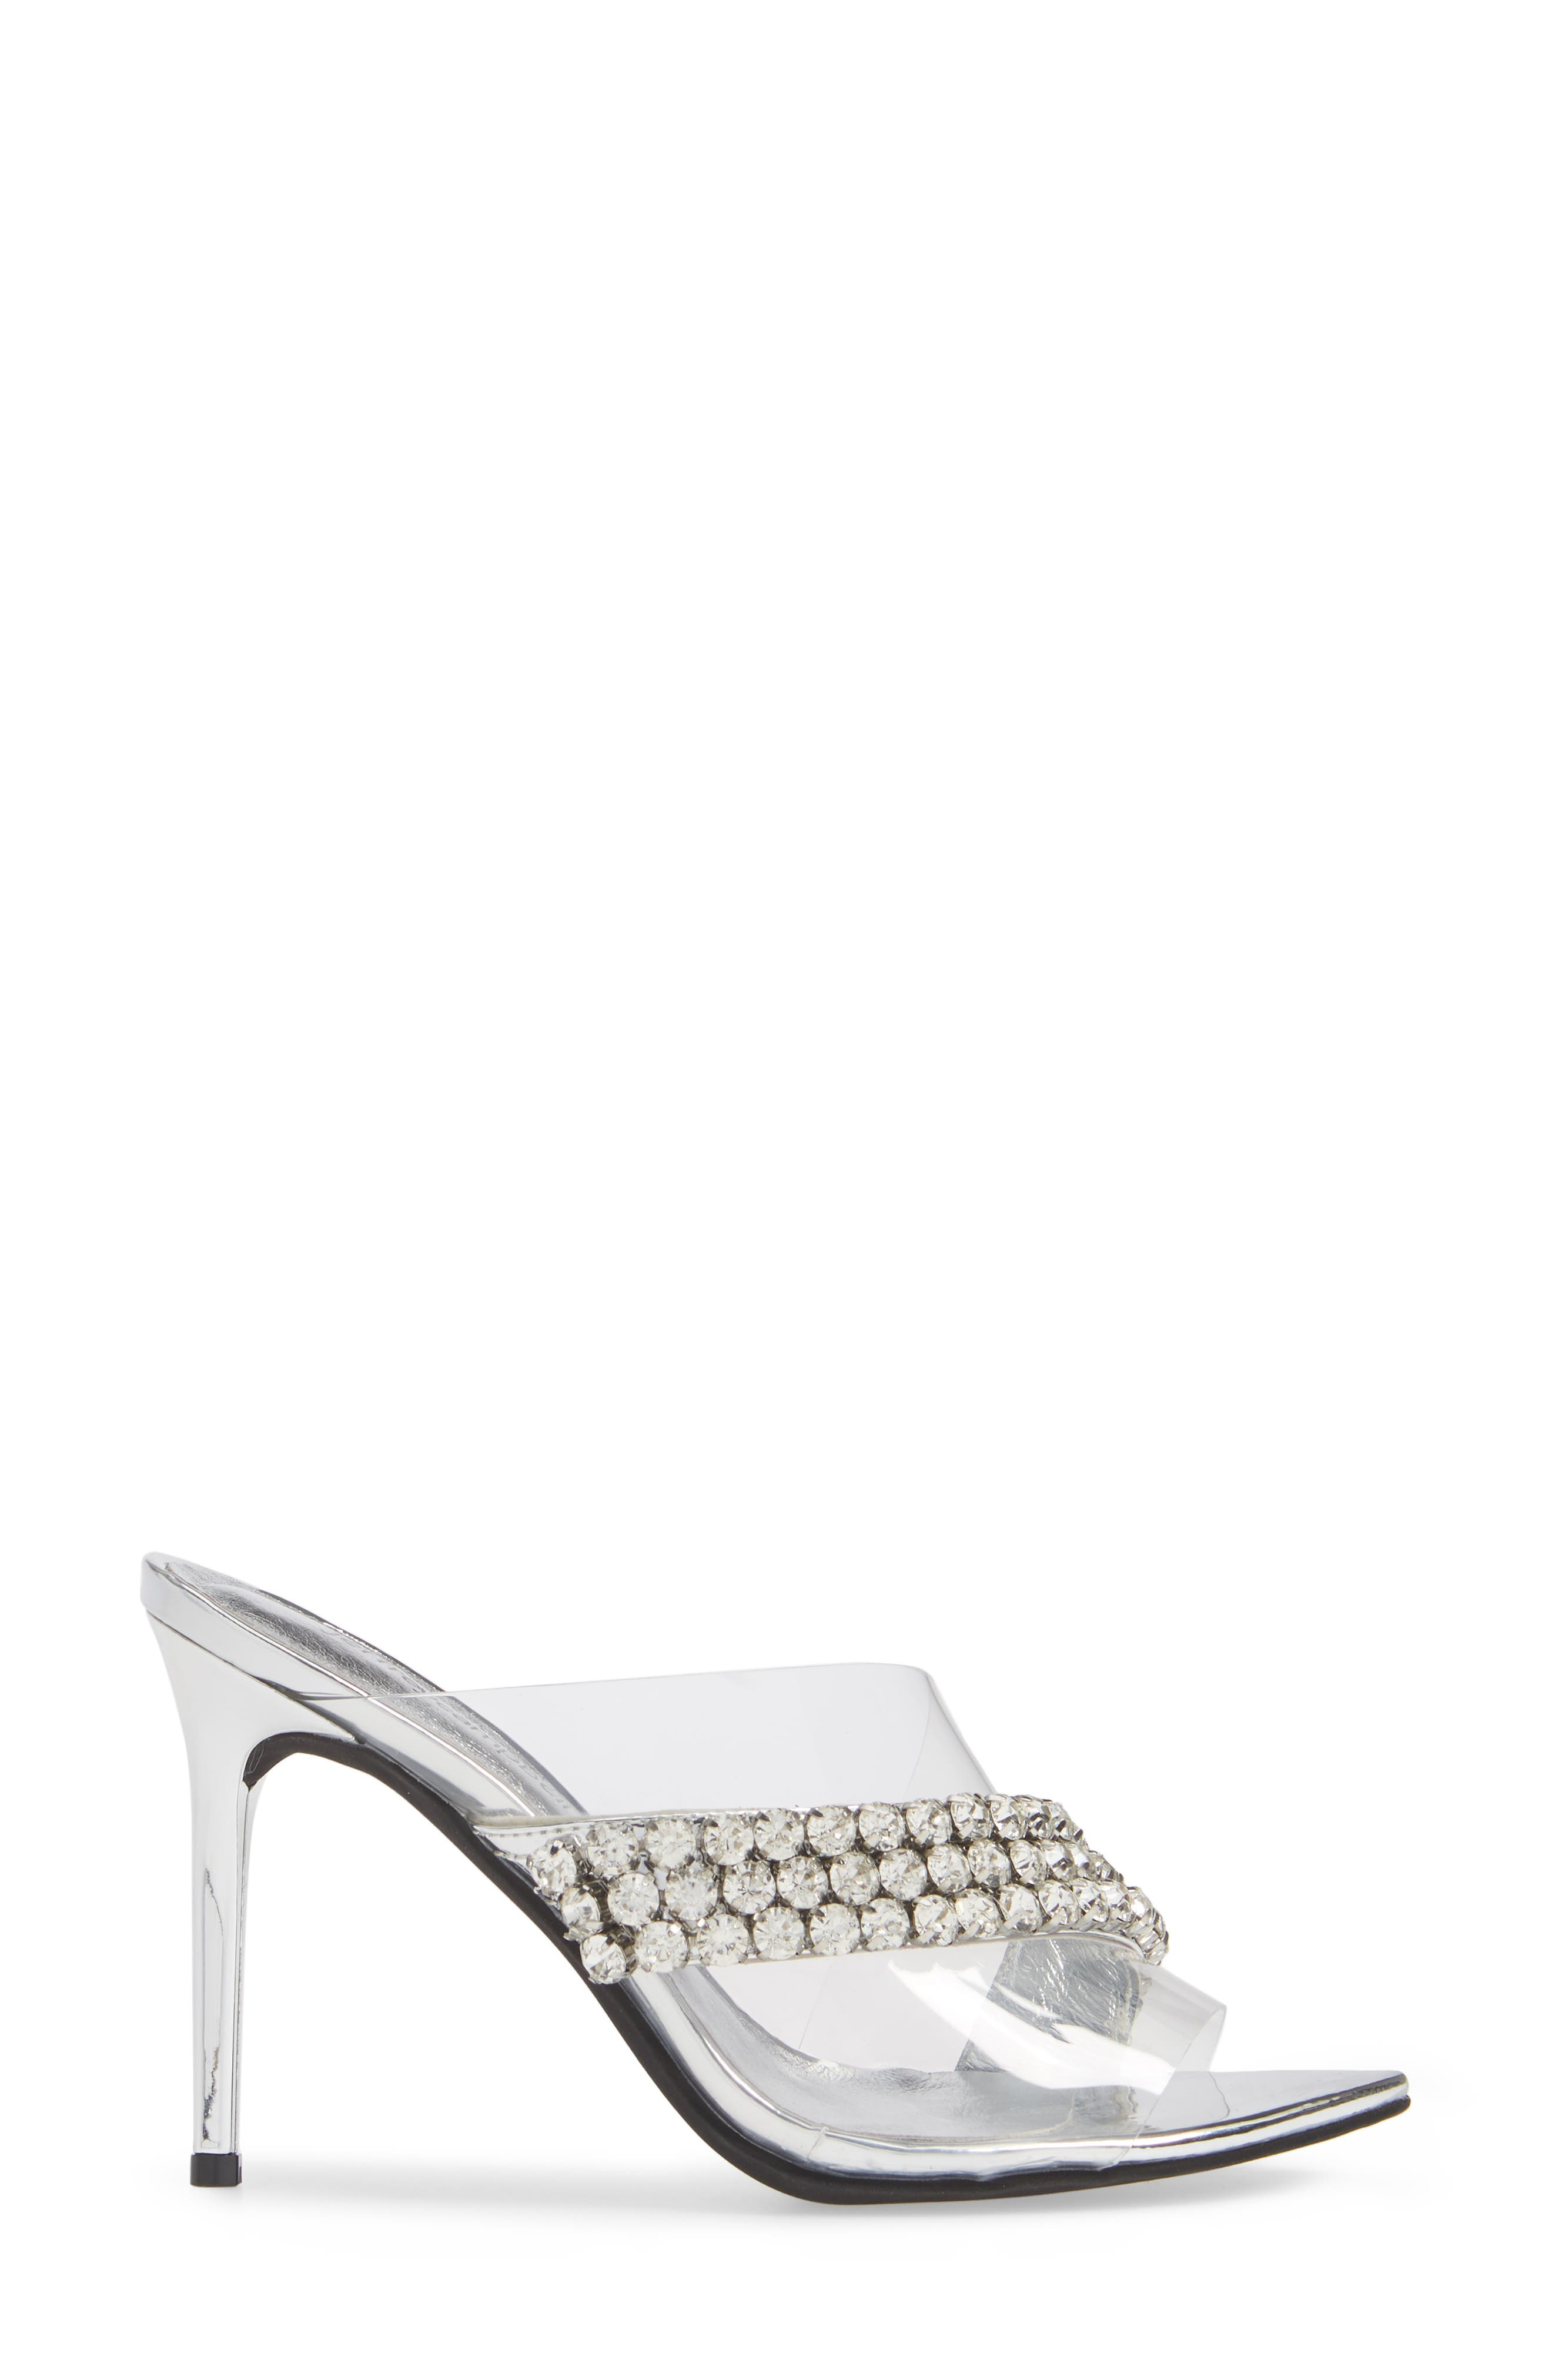 Glam Sandal,                             Alternate thumbnail 3, color,                             SILVER MIRROR LEATHER